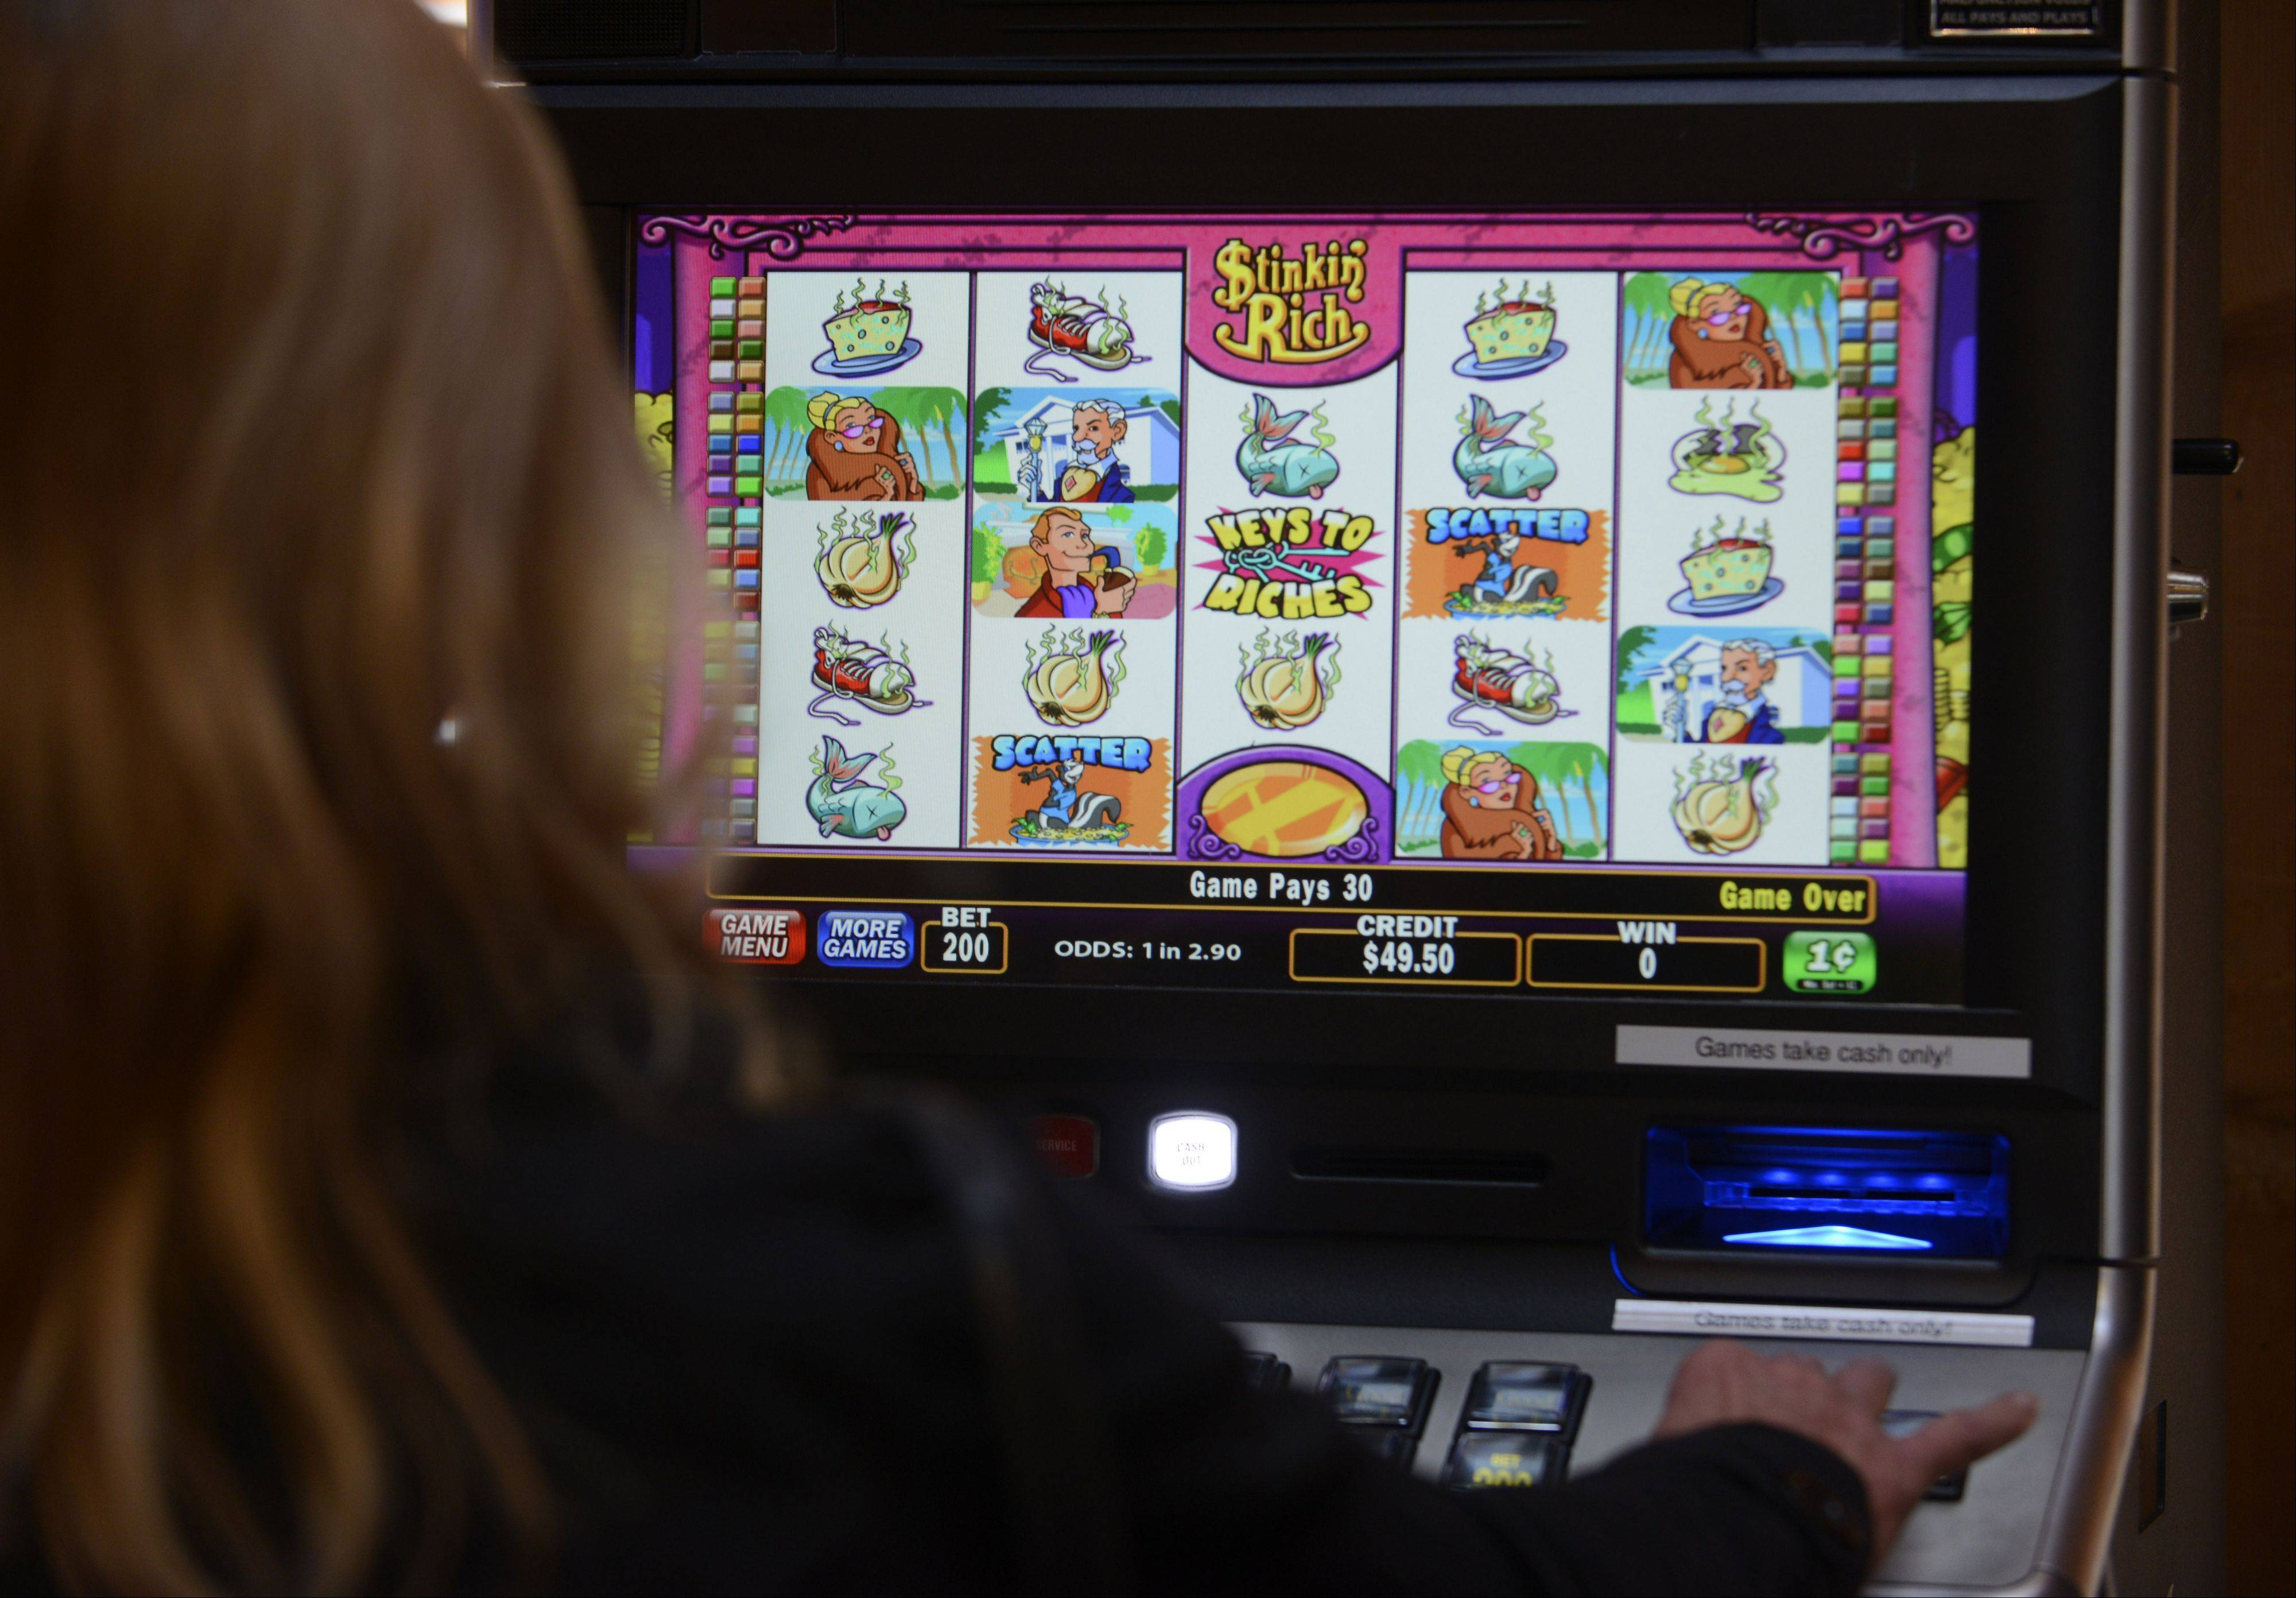 The Lake County Board on Tuesday struck a ban on video gambling and approved an ordinance allowing it the unincorporated area. Supporters argued that establishments that couldn't have it were at a competitive disadvantage.